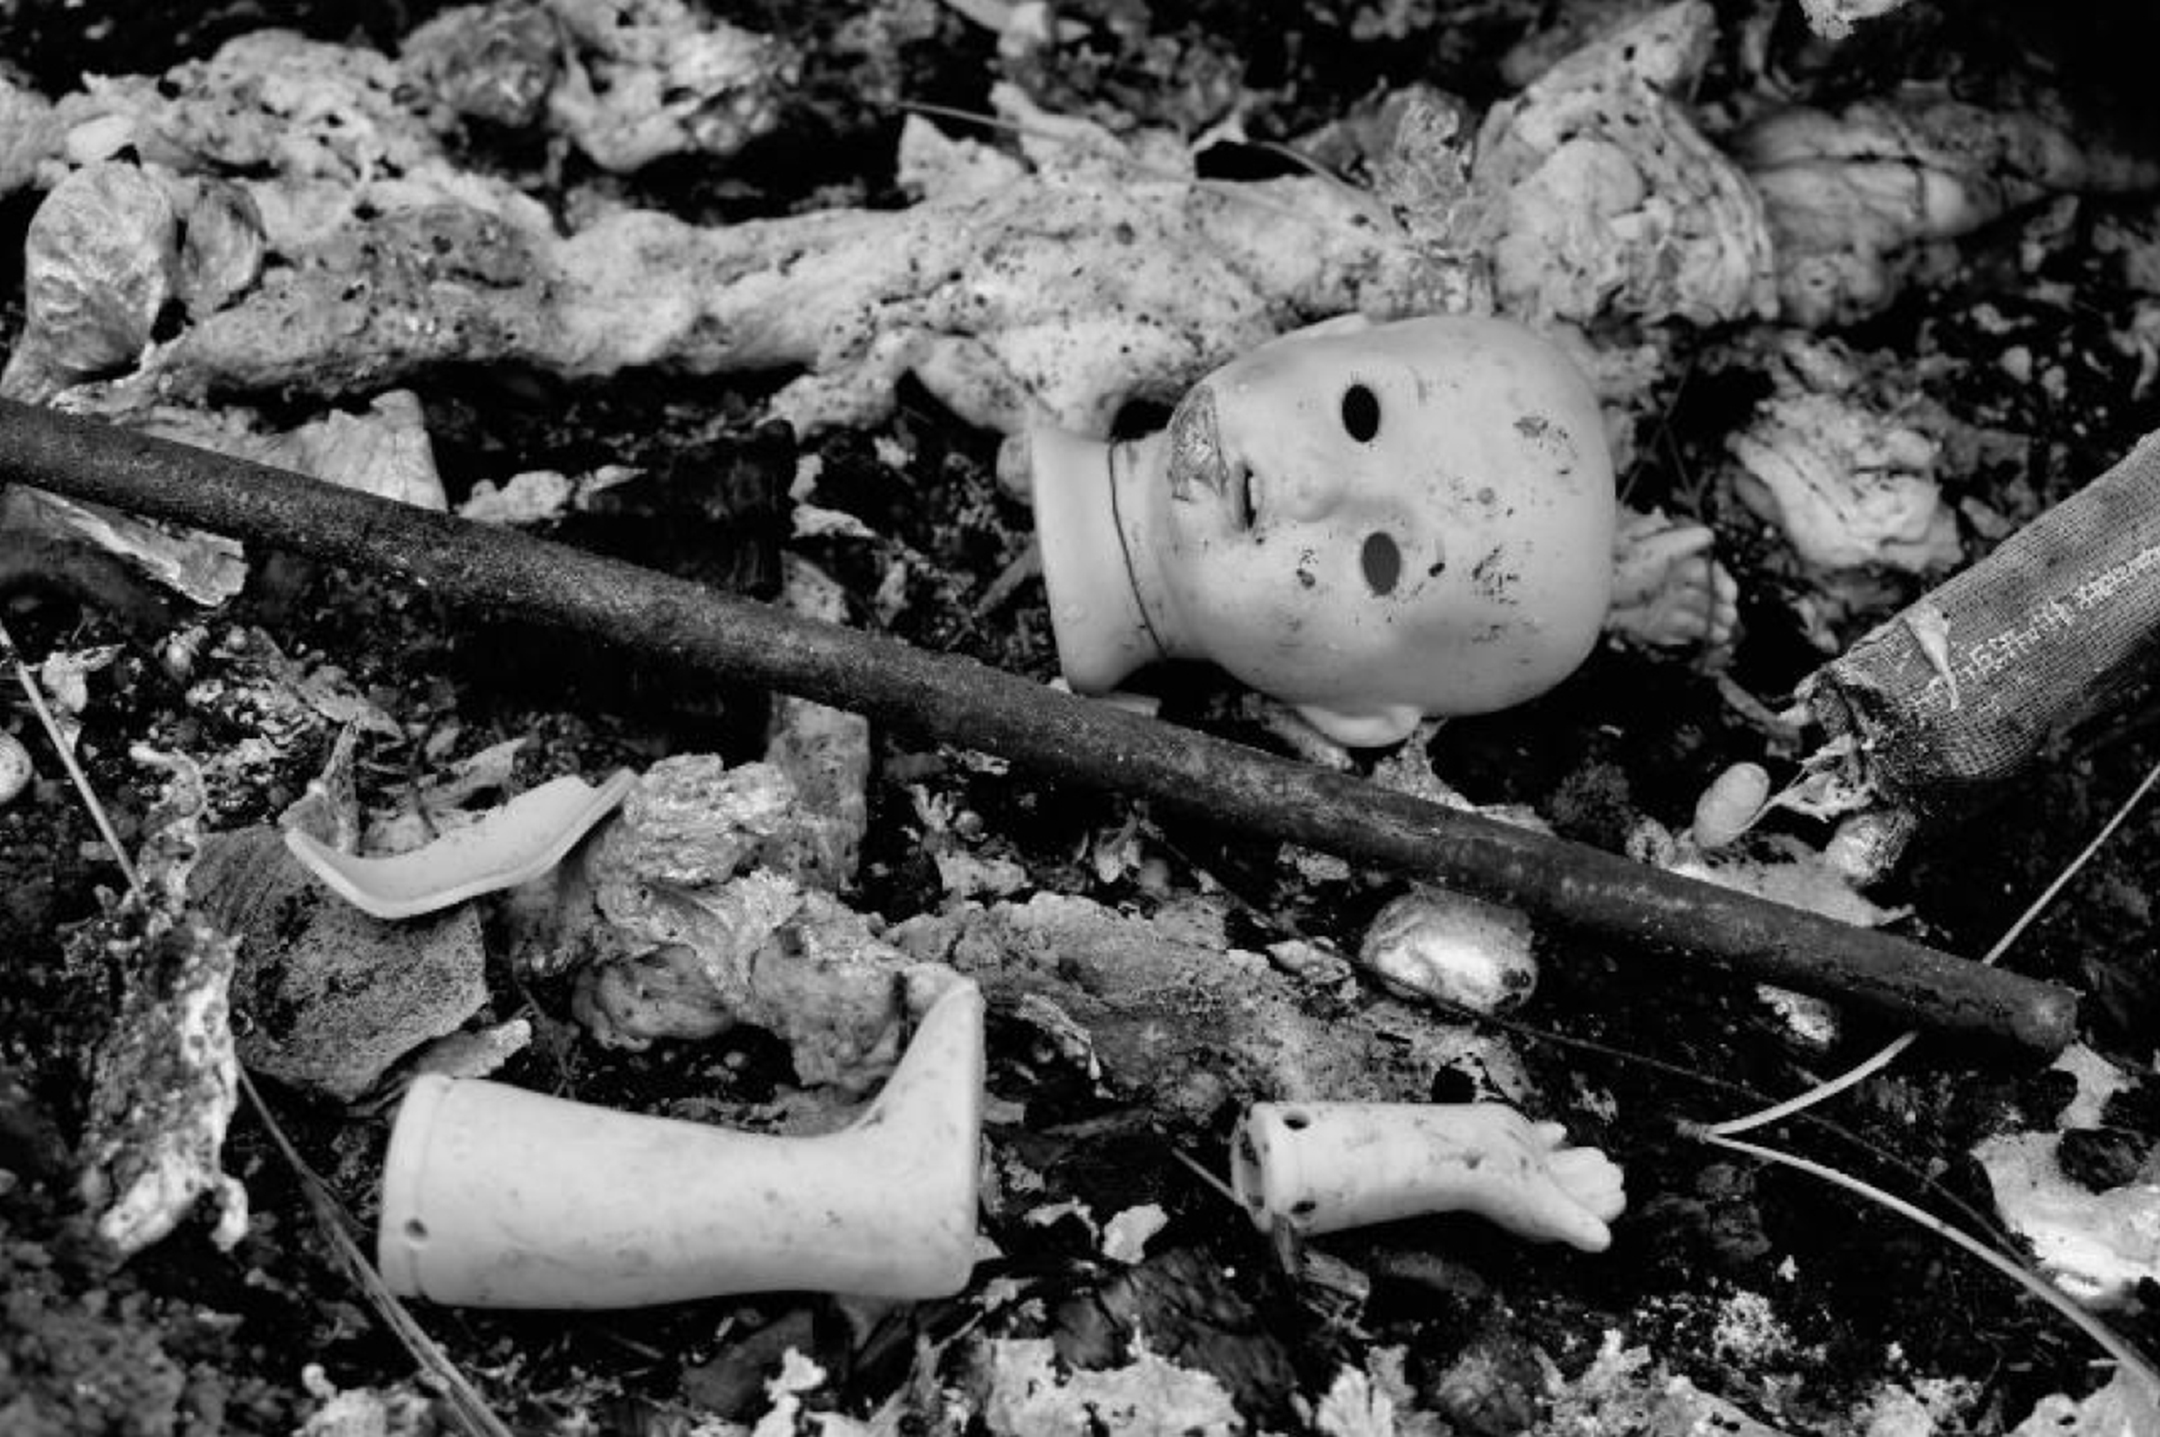 black and white photograph of a burned landscape with a pieces of broken baby doll — head, arm, leg — at the center of the frame